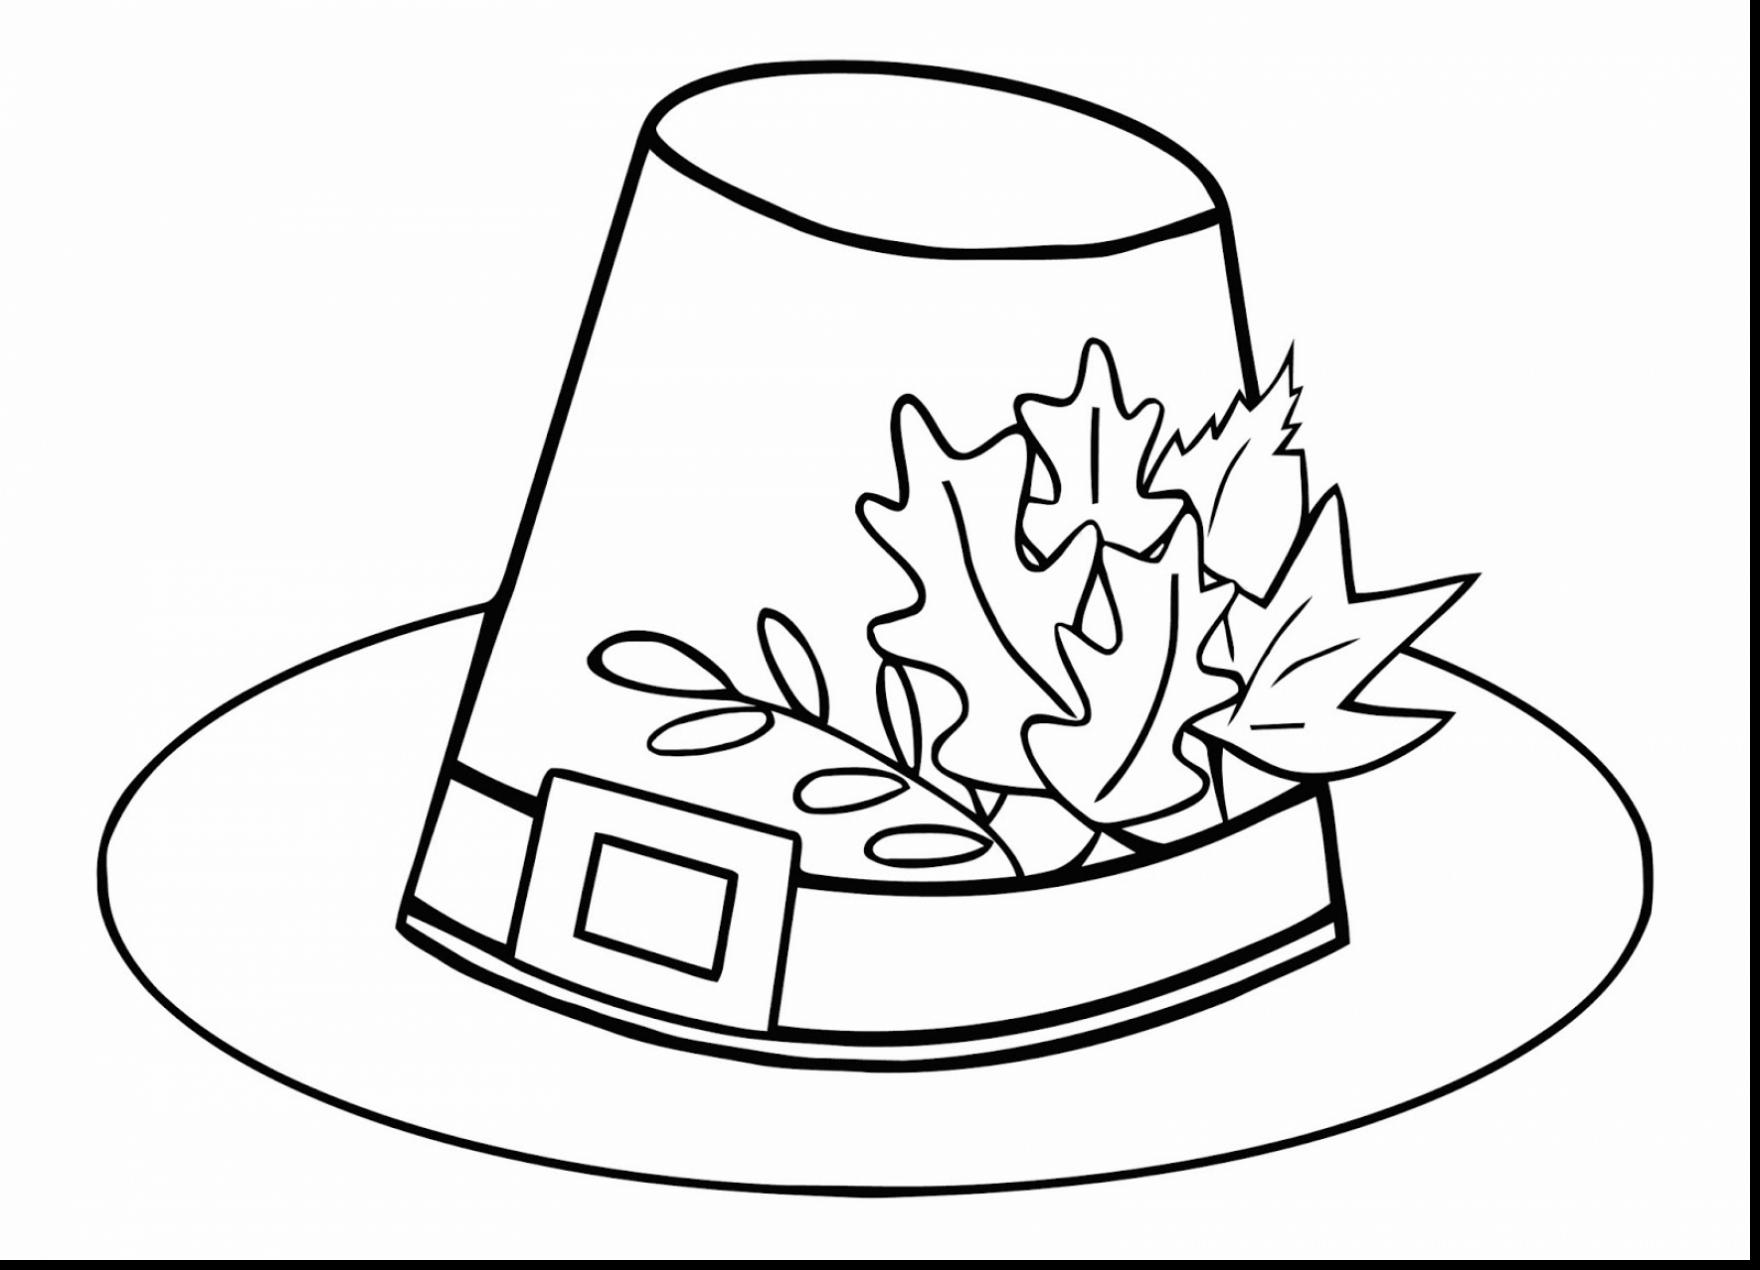 1760x1270 Beautiful Thanksgiving Pilgrim Hat Coloring Page With Thanksgiving